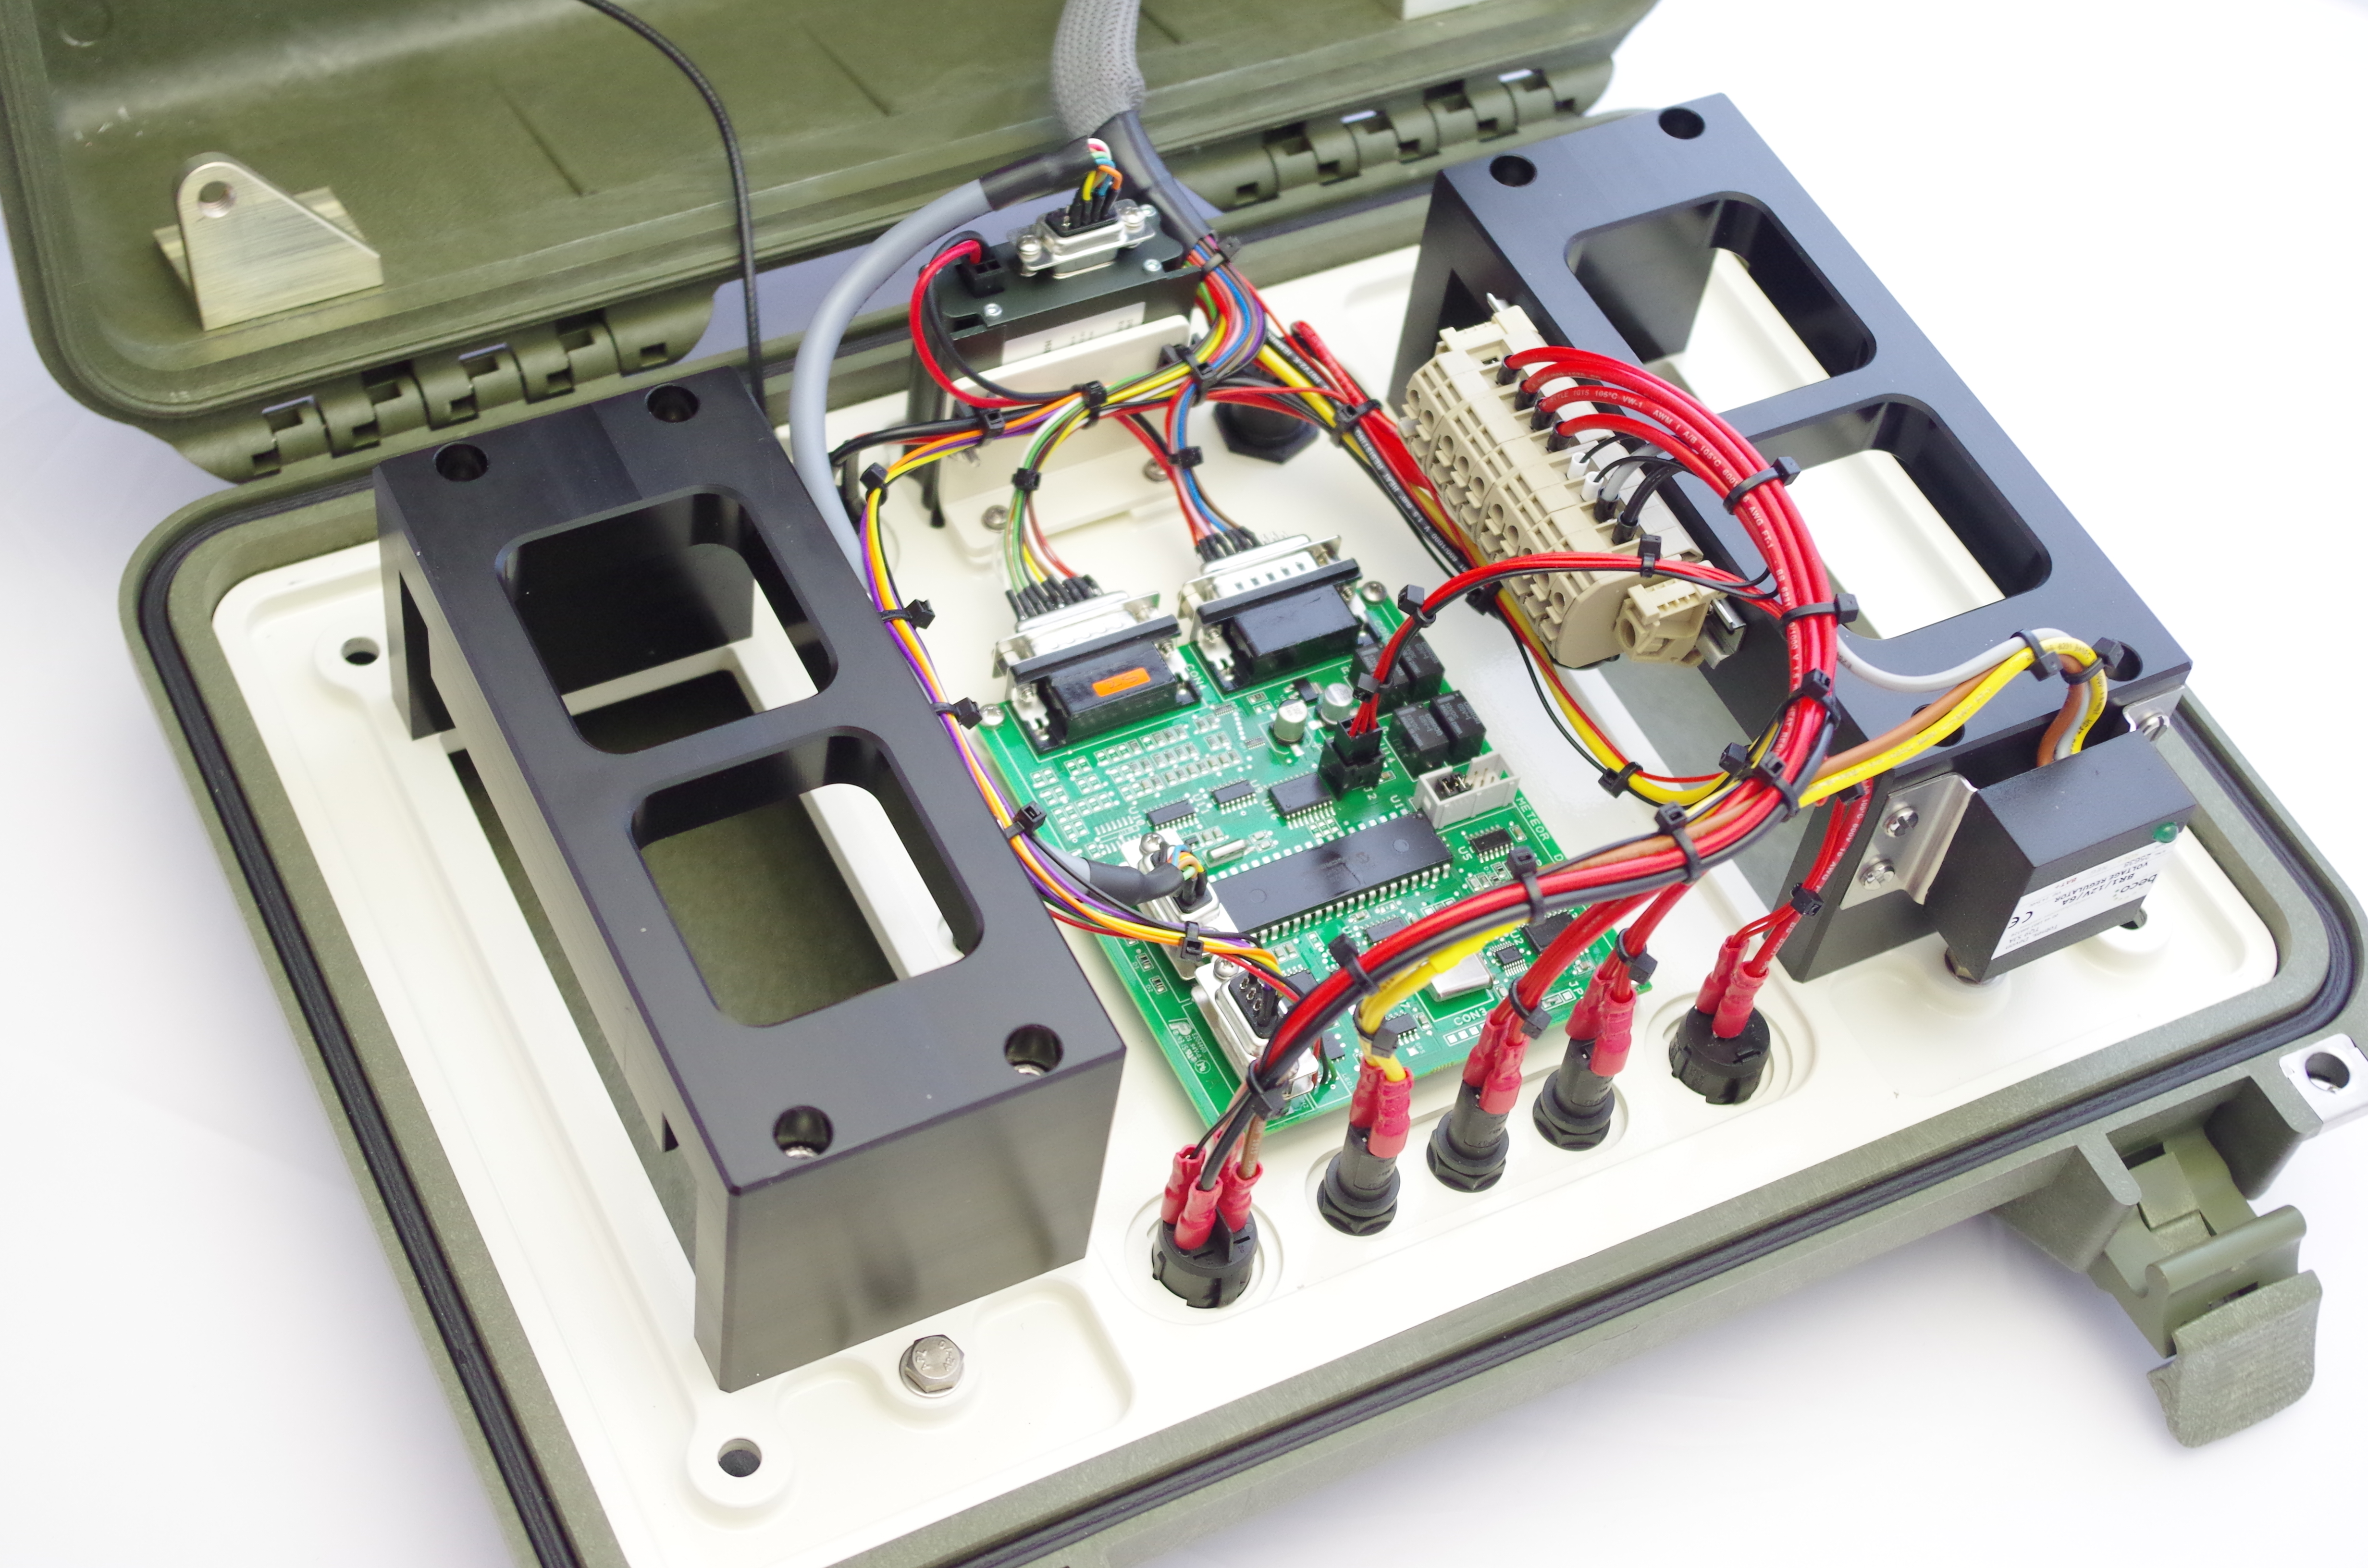 Custom Cable Harnesses Wiring Looms Boxes Assemblies Box For Computer Harness Our Services Include Concept And Engineering Design Full Material Procurement Supply Chain Management Uk Manufacturing Test To The Highest Possible